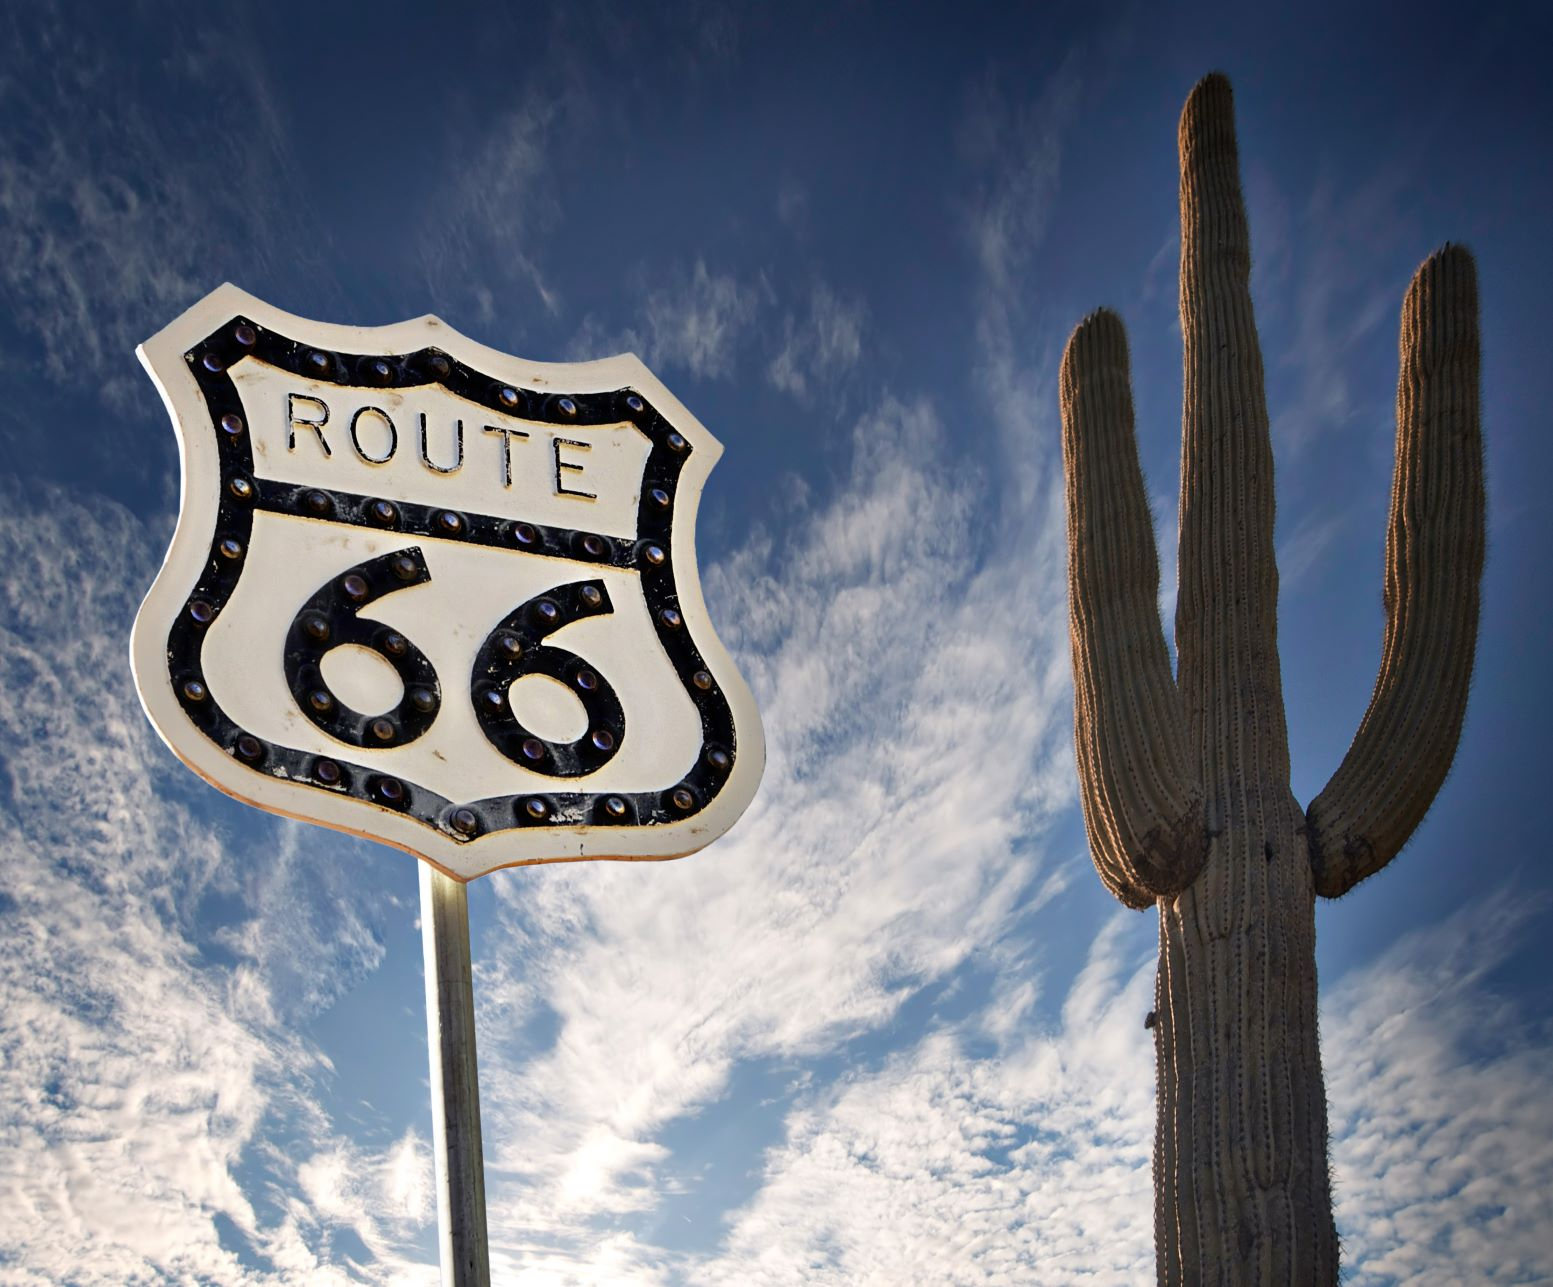 Route 66 sign & a giant cactus